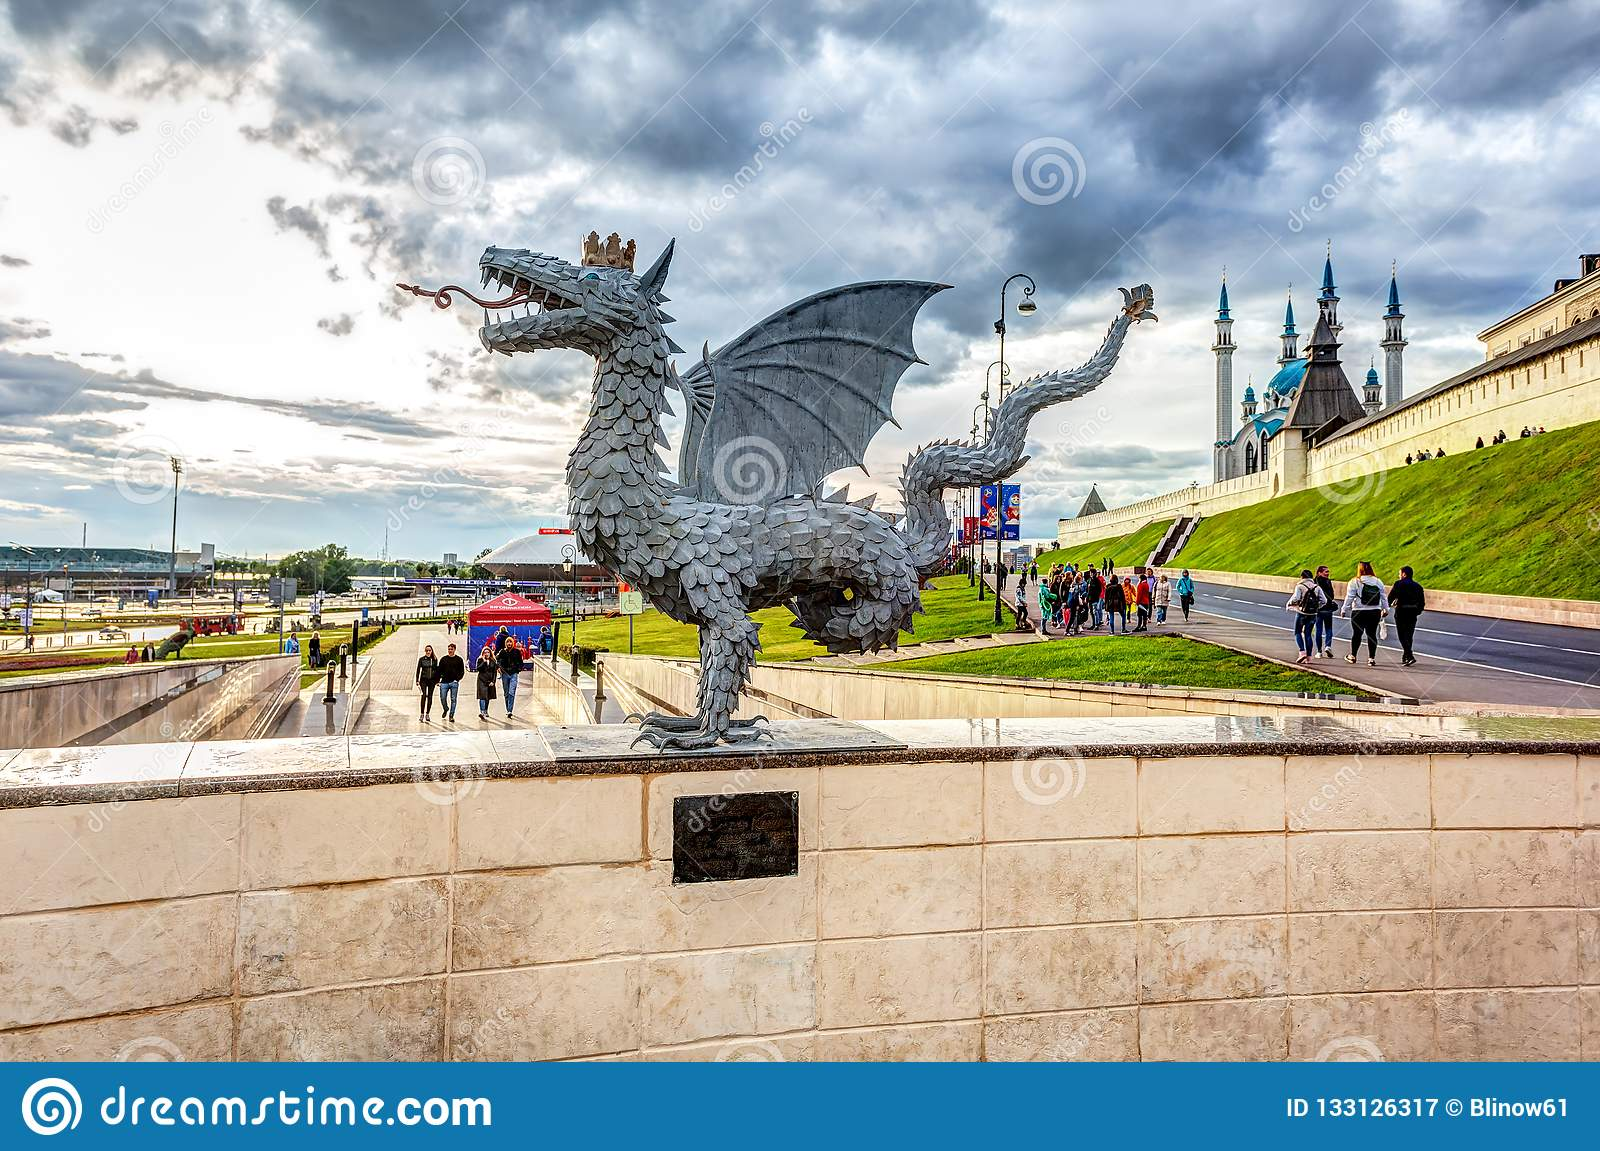 Sculpture of mythical serpent Zilant, the official symbol of Kazan